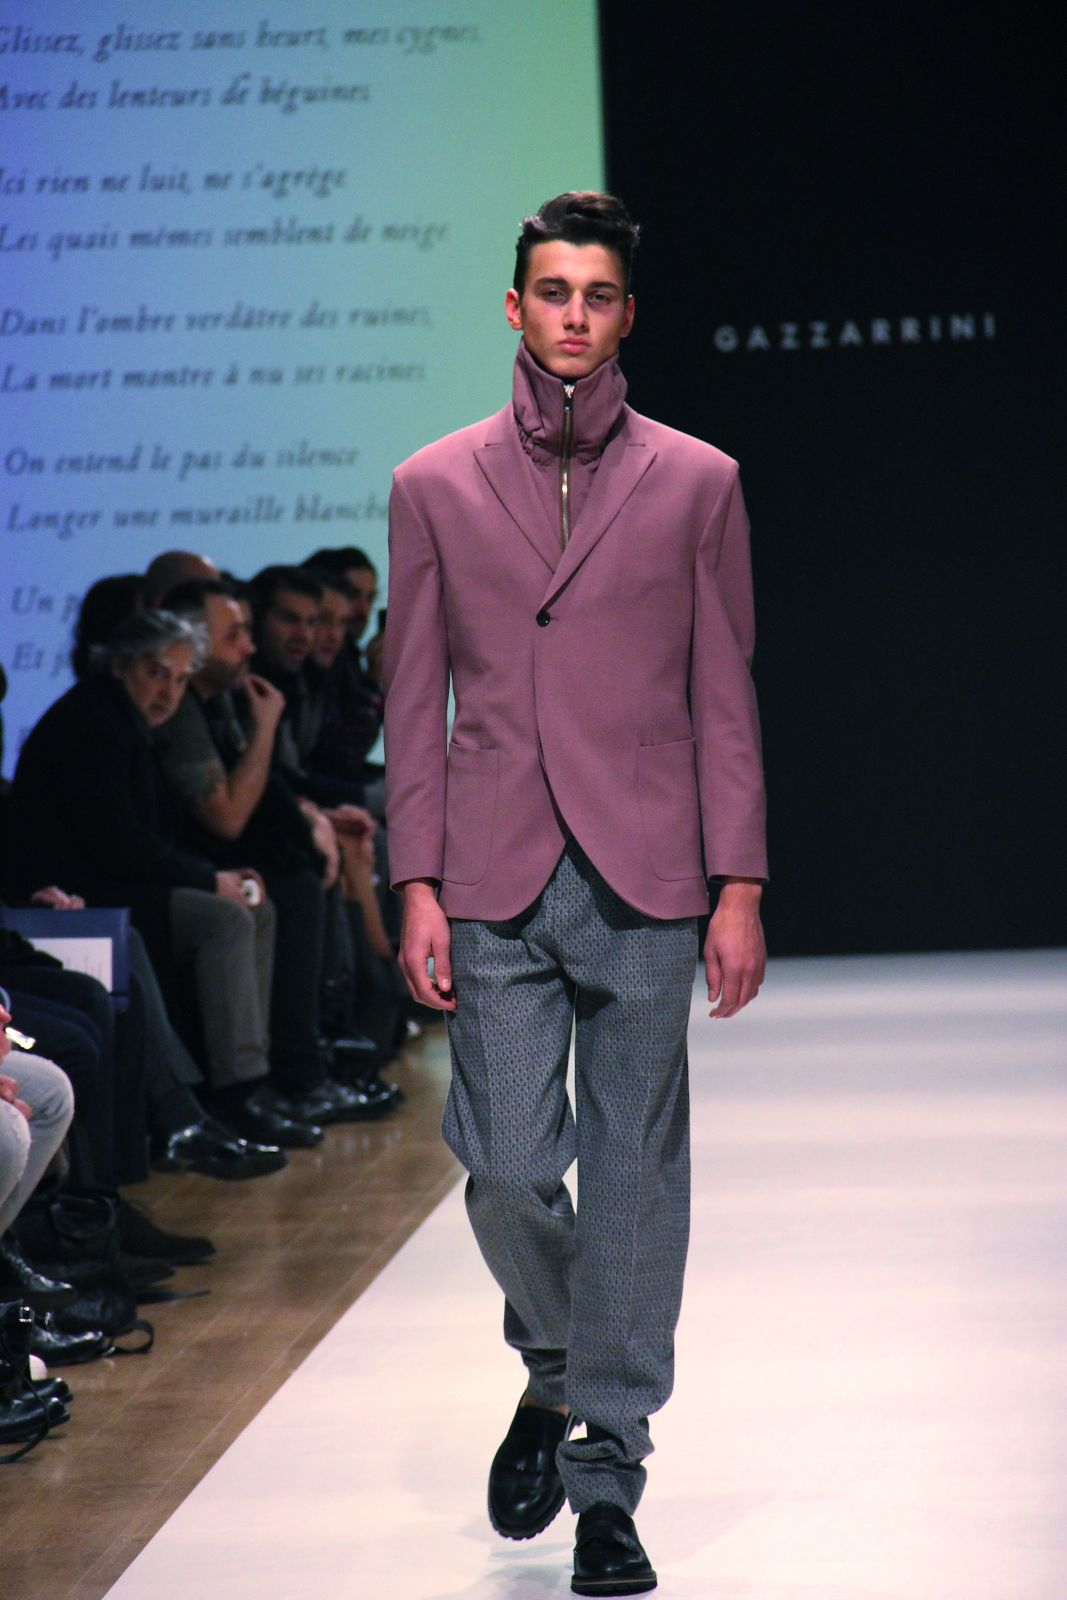 Gazzarrini Fall Winter 2012-13 Men's Collection Milano Fashion Week